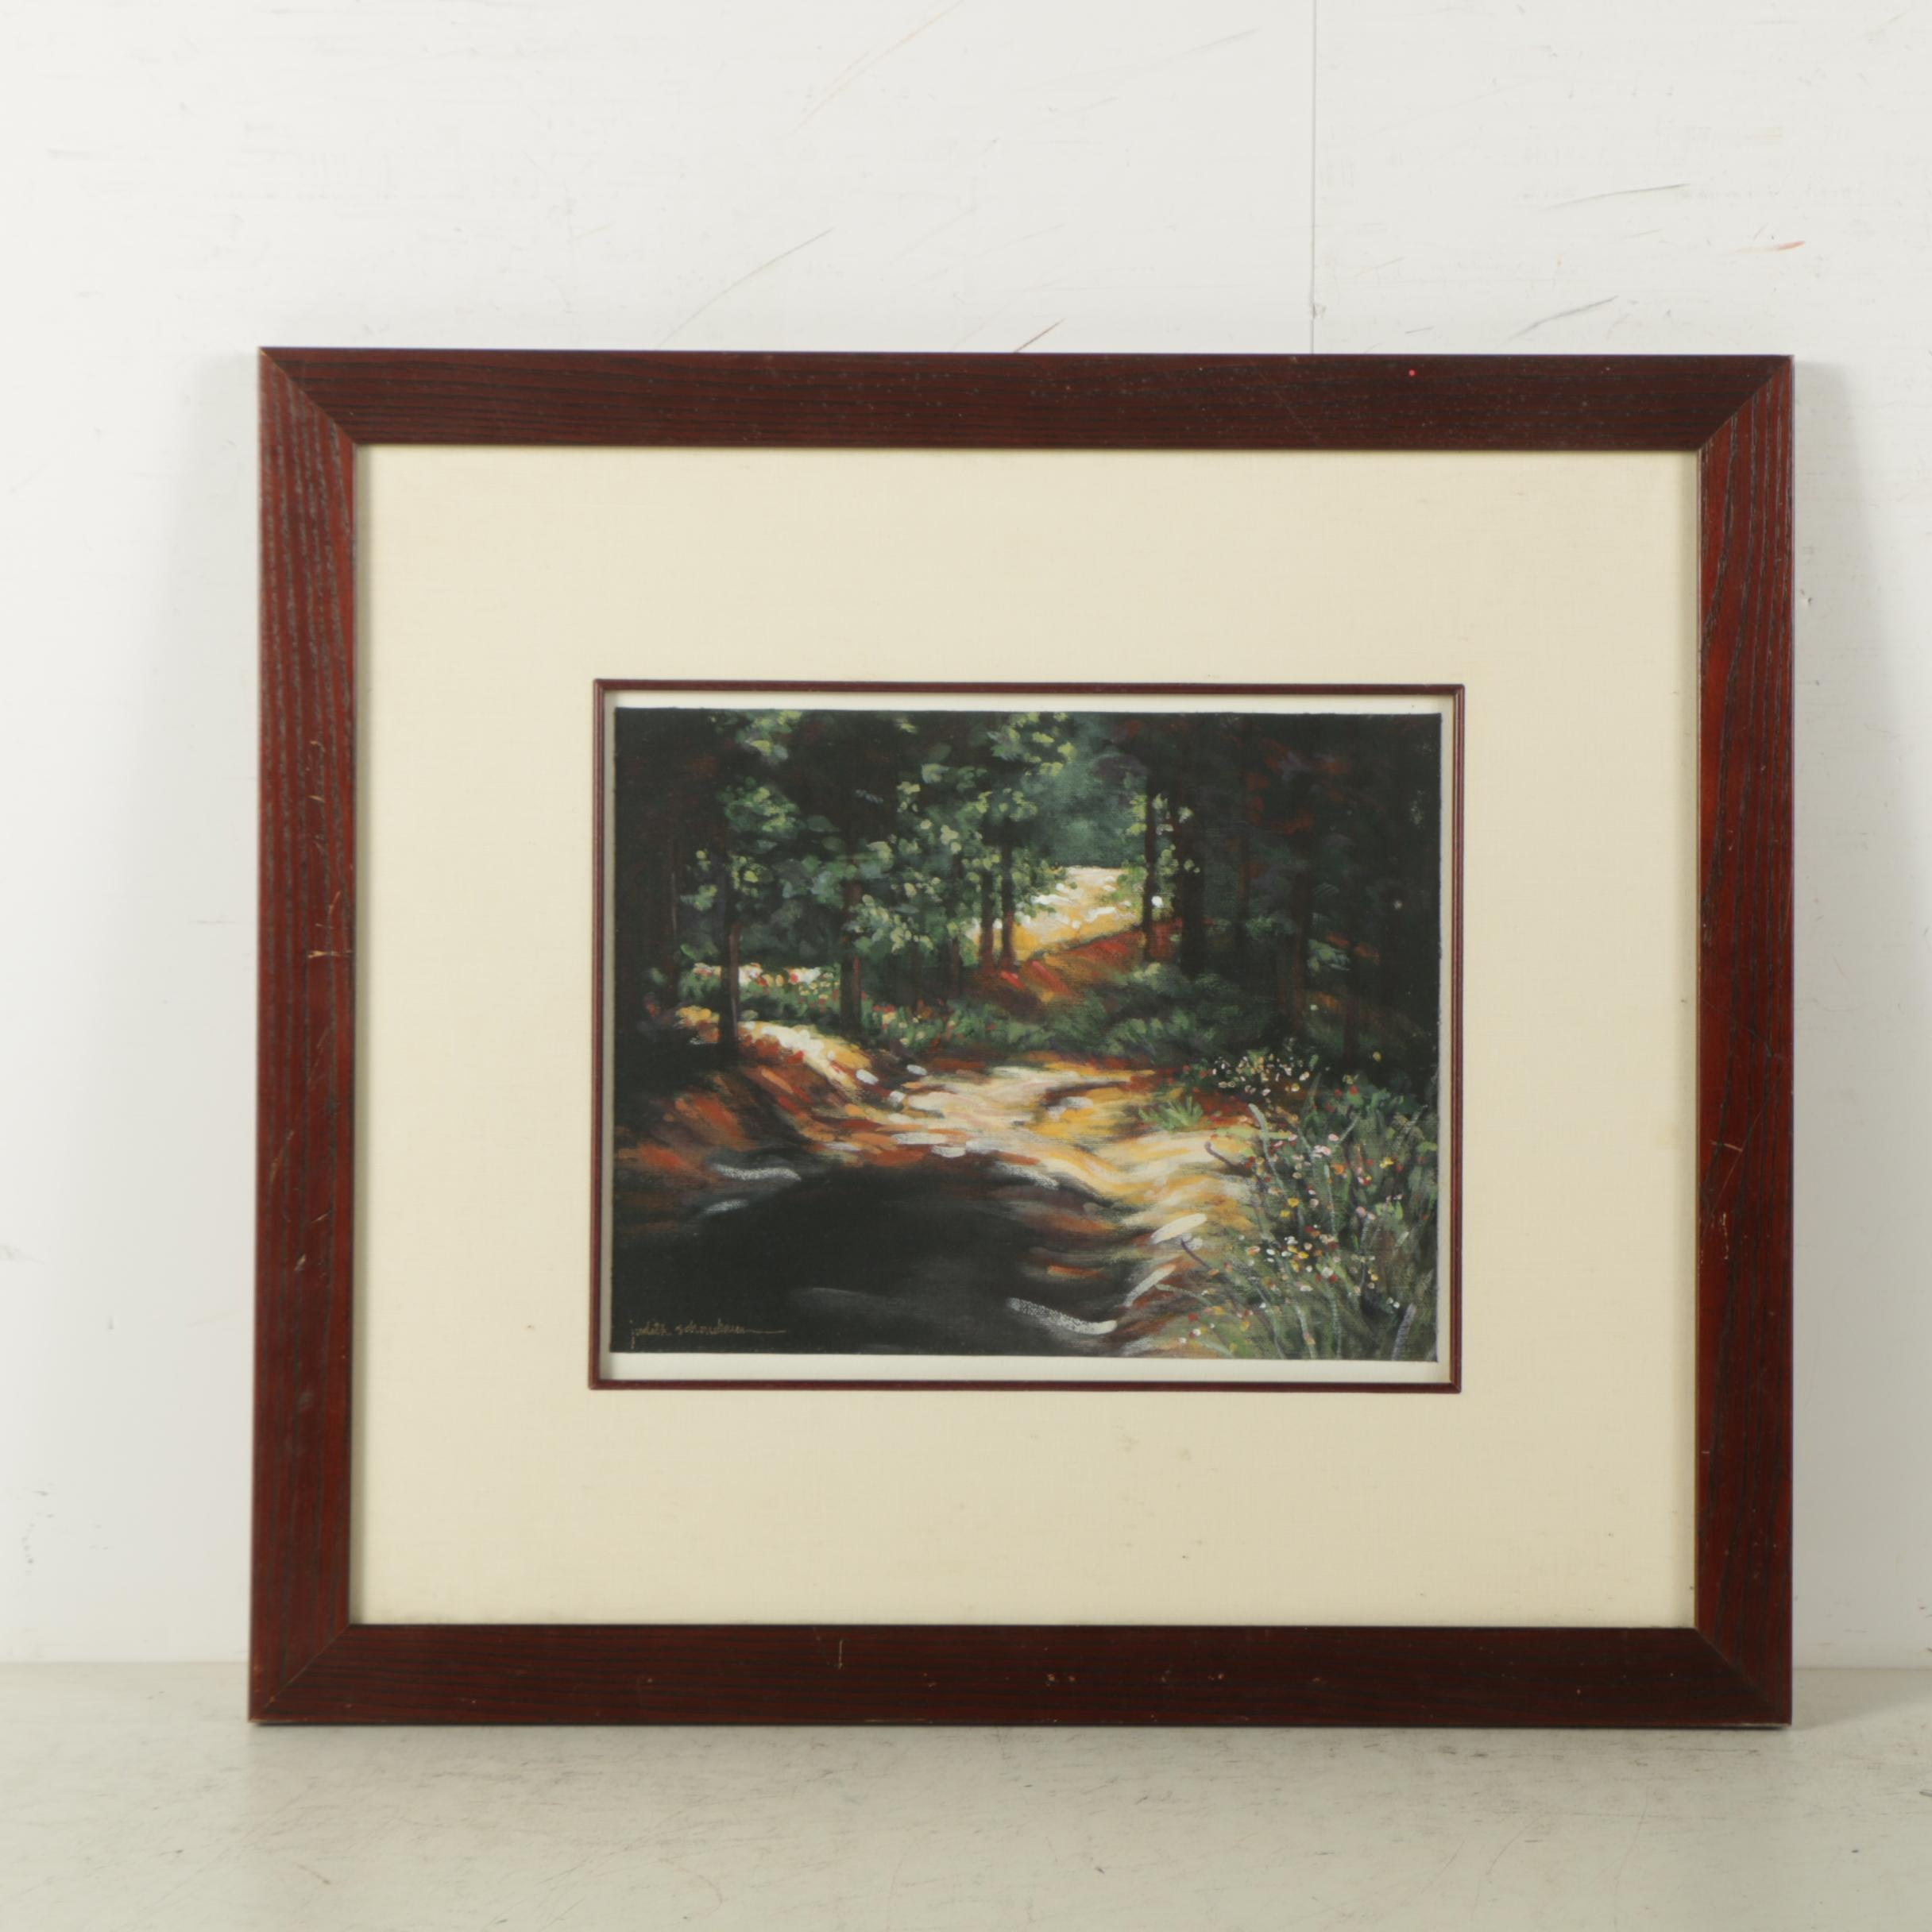 Judith Schonebaum Oil Painting on Canvas of Forest Landscape